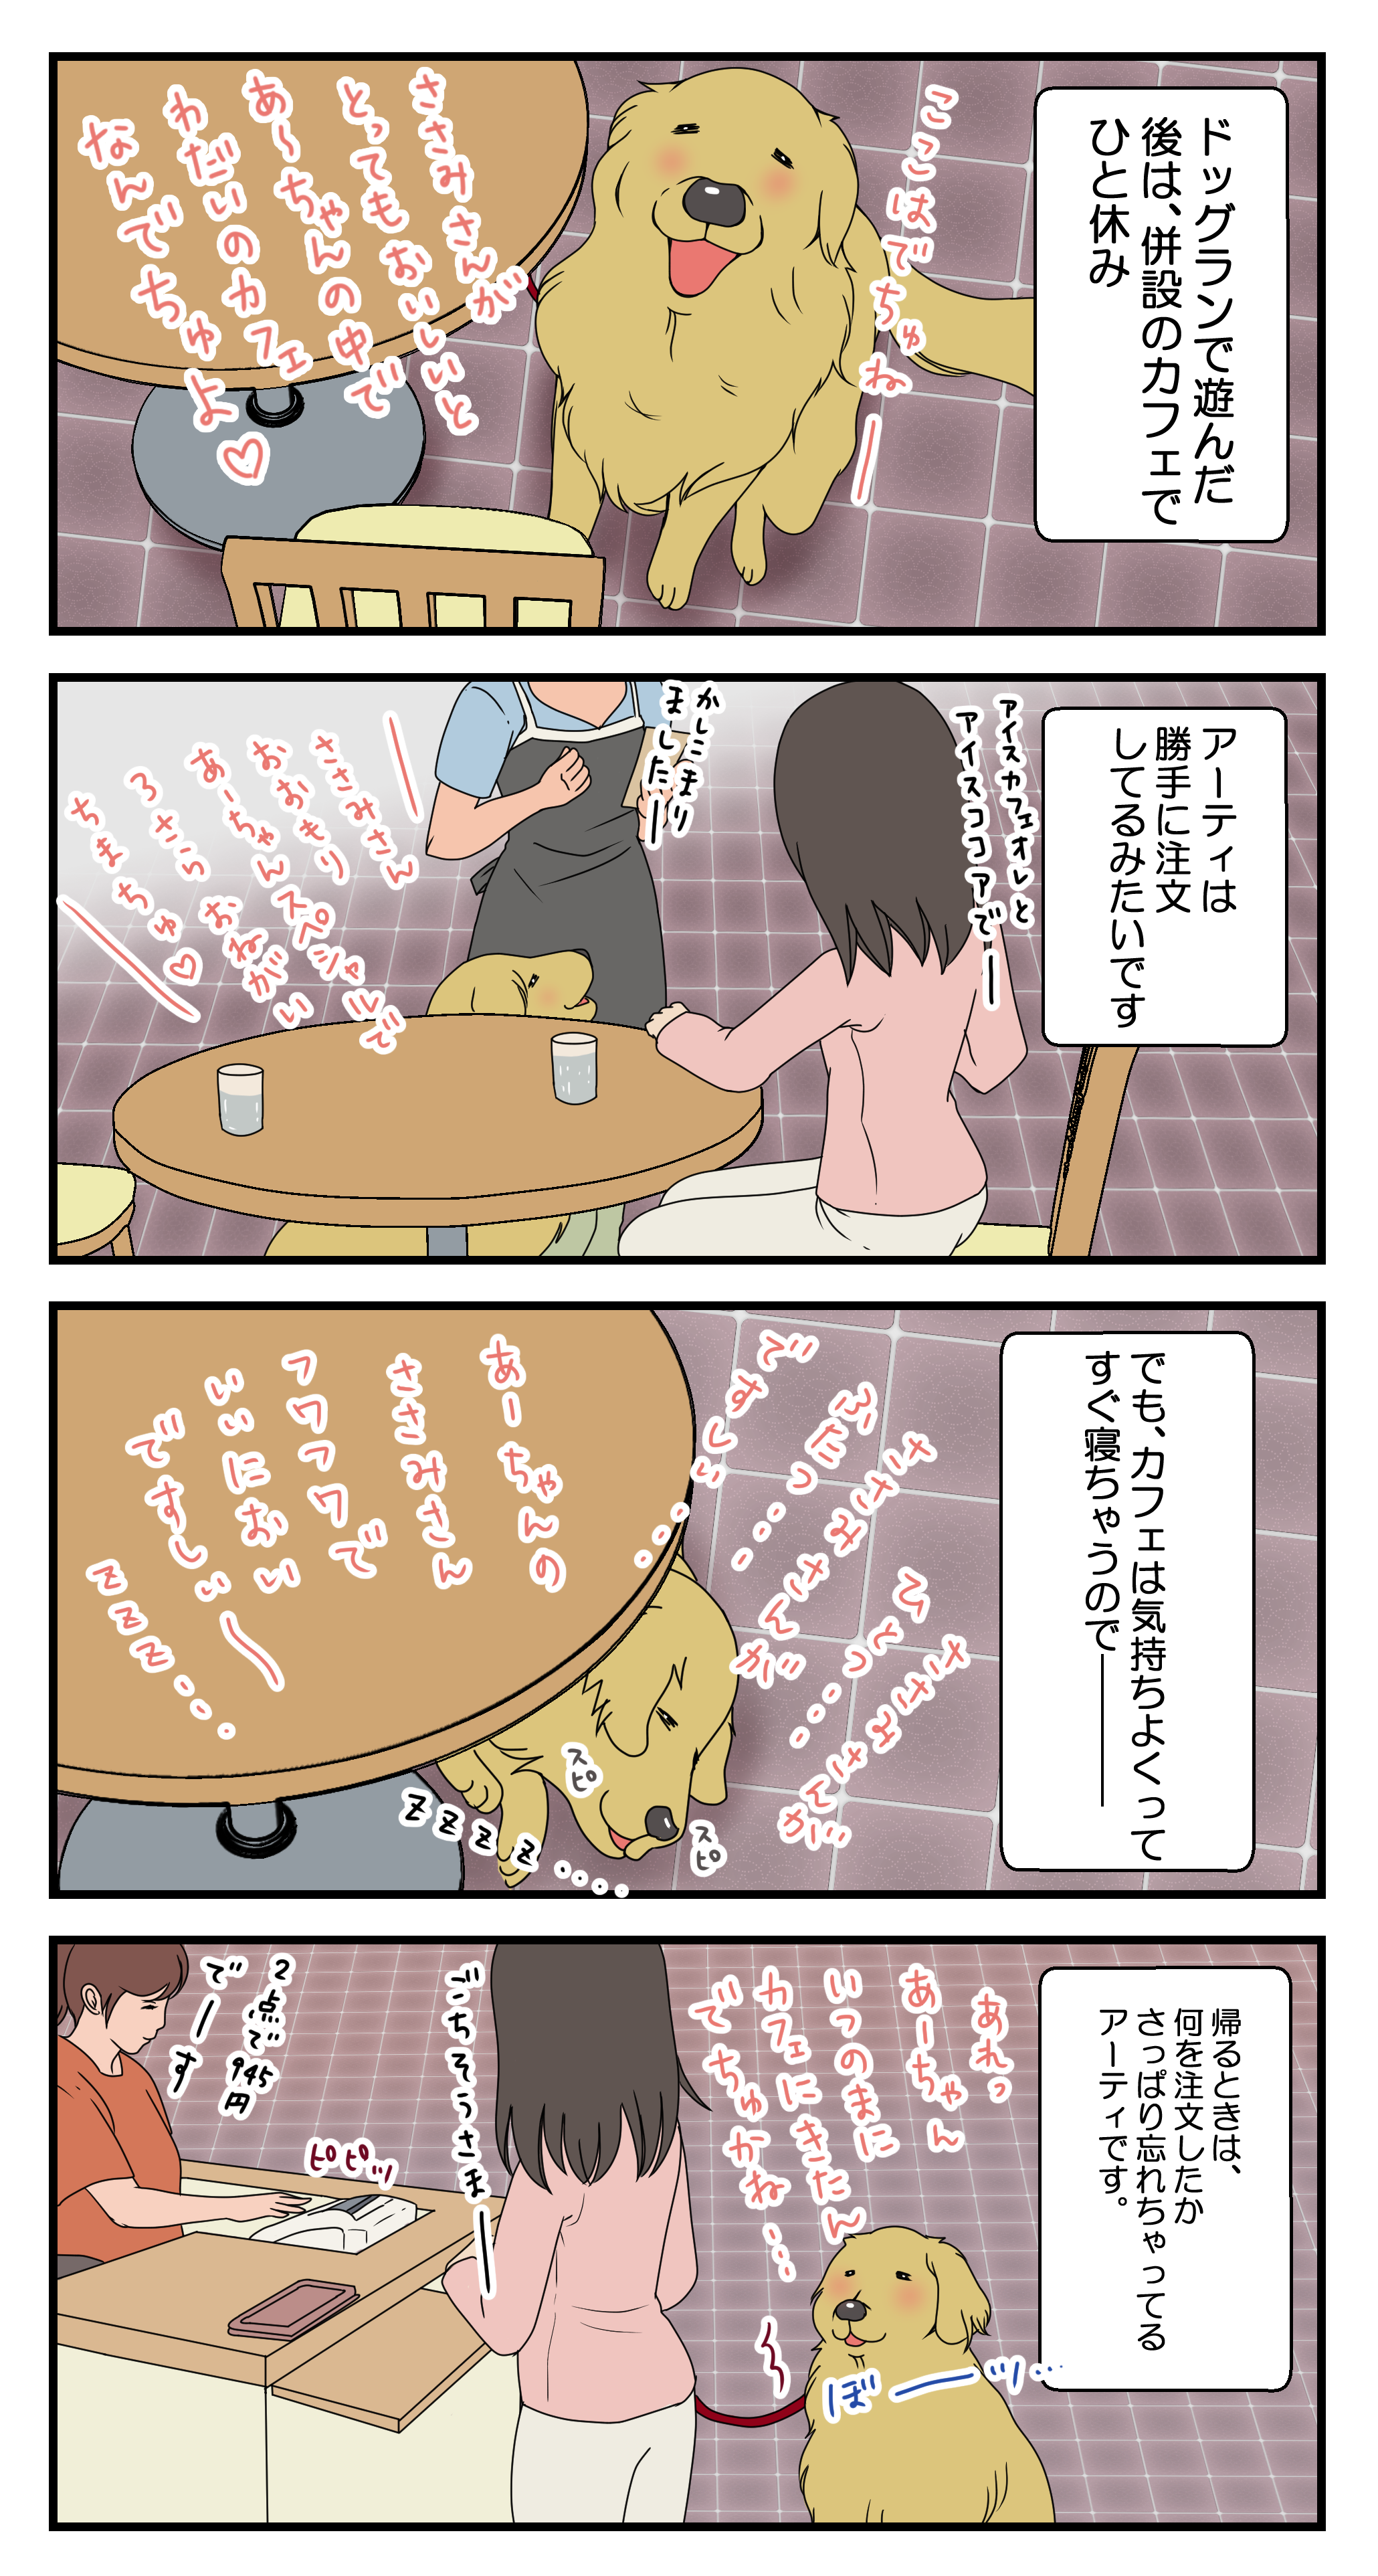 20160504.png